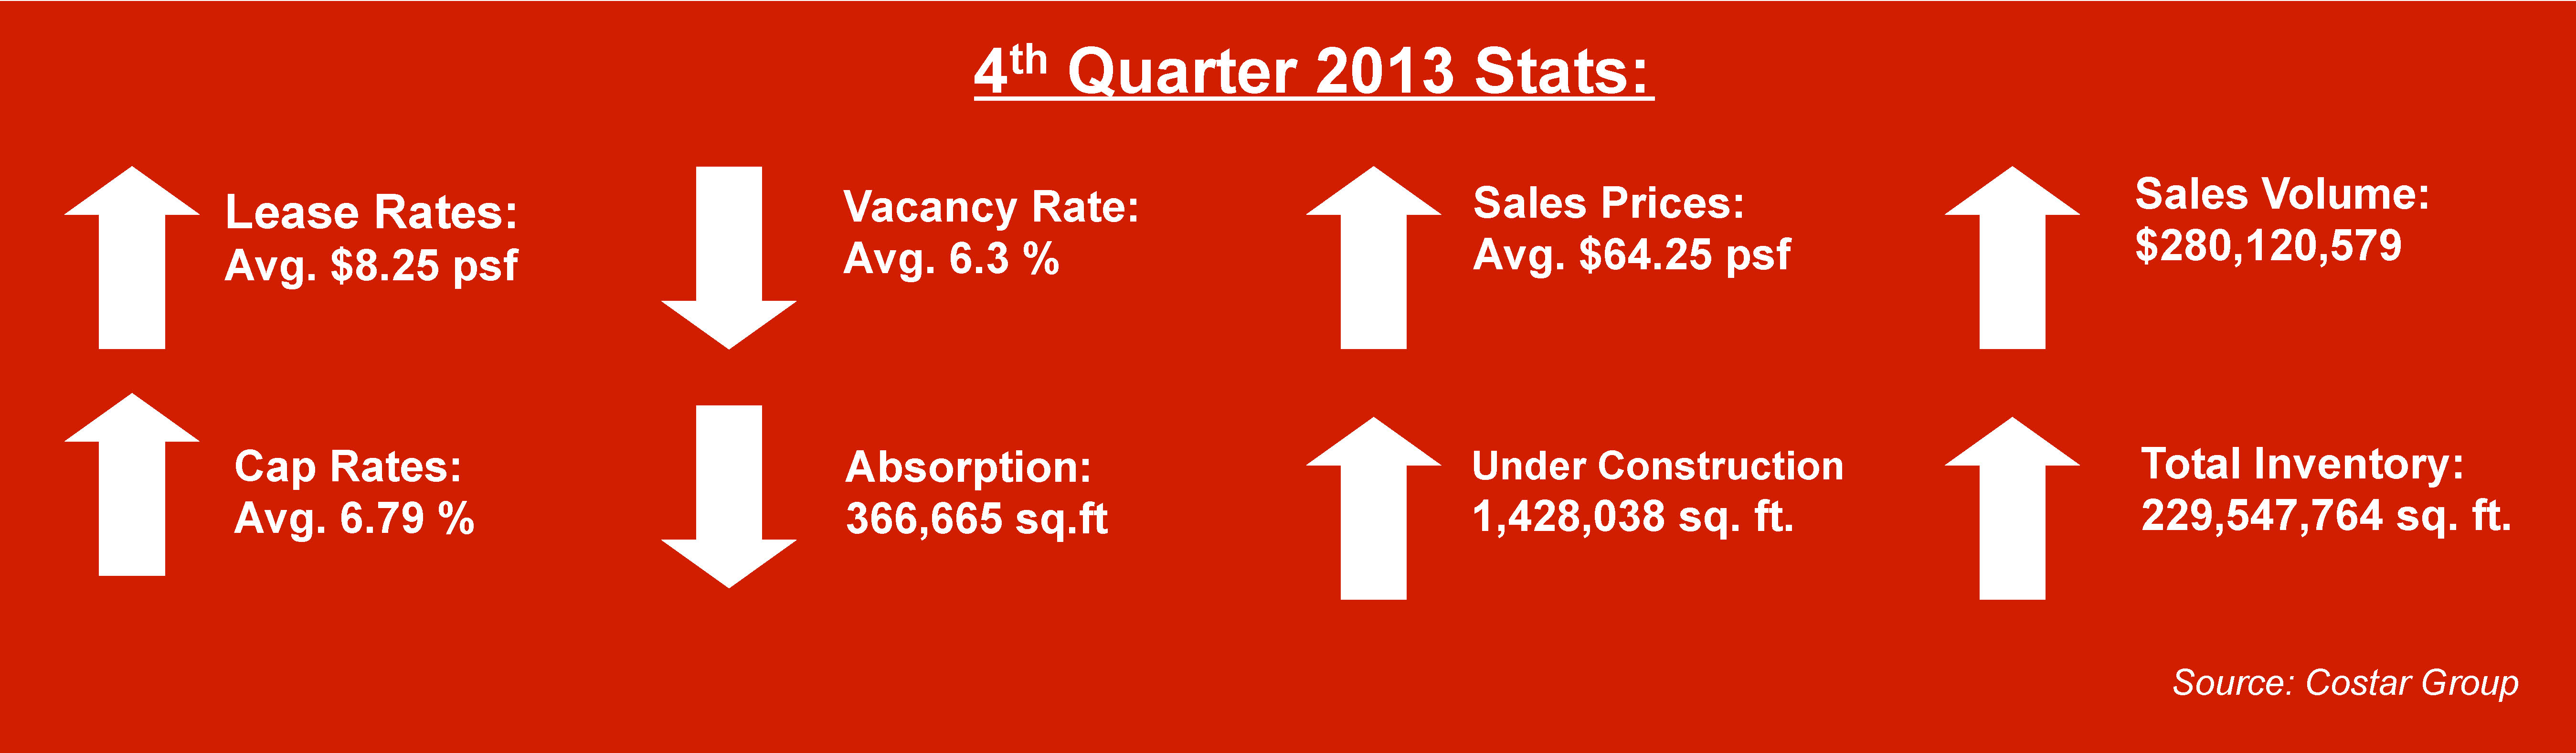 miami industrial real estate stats 4th quarter 2013